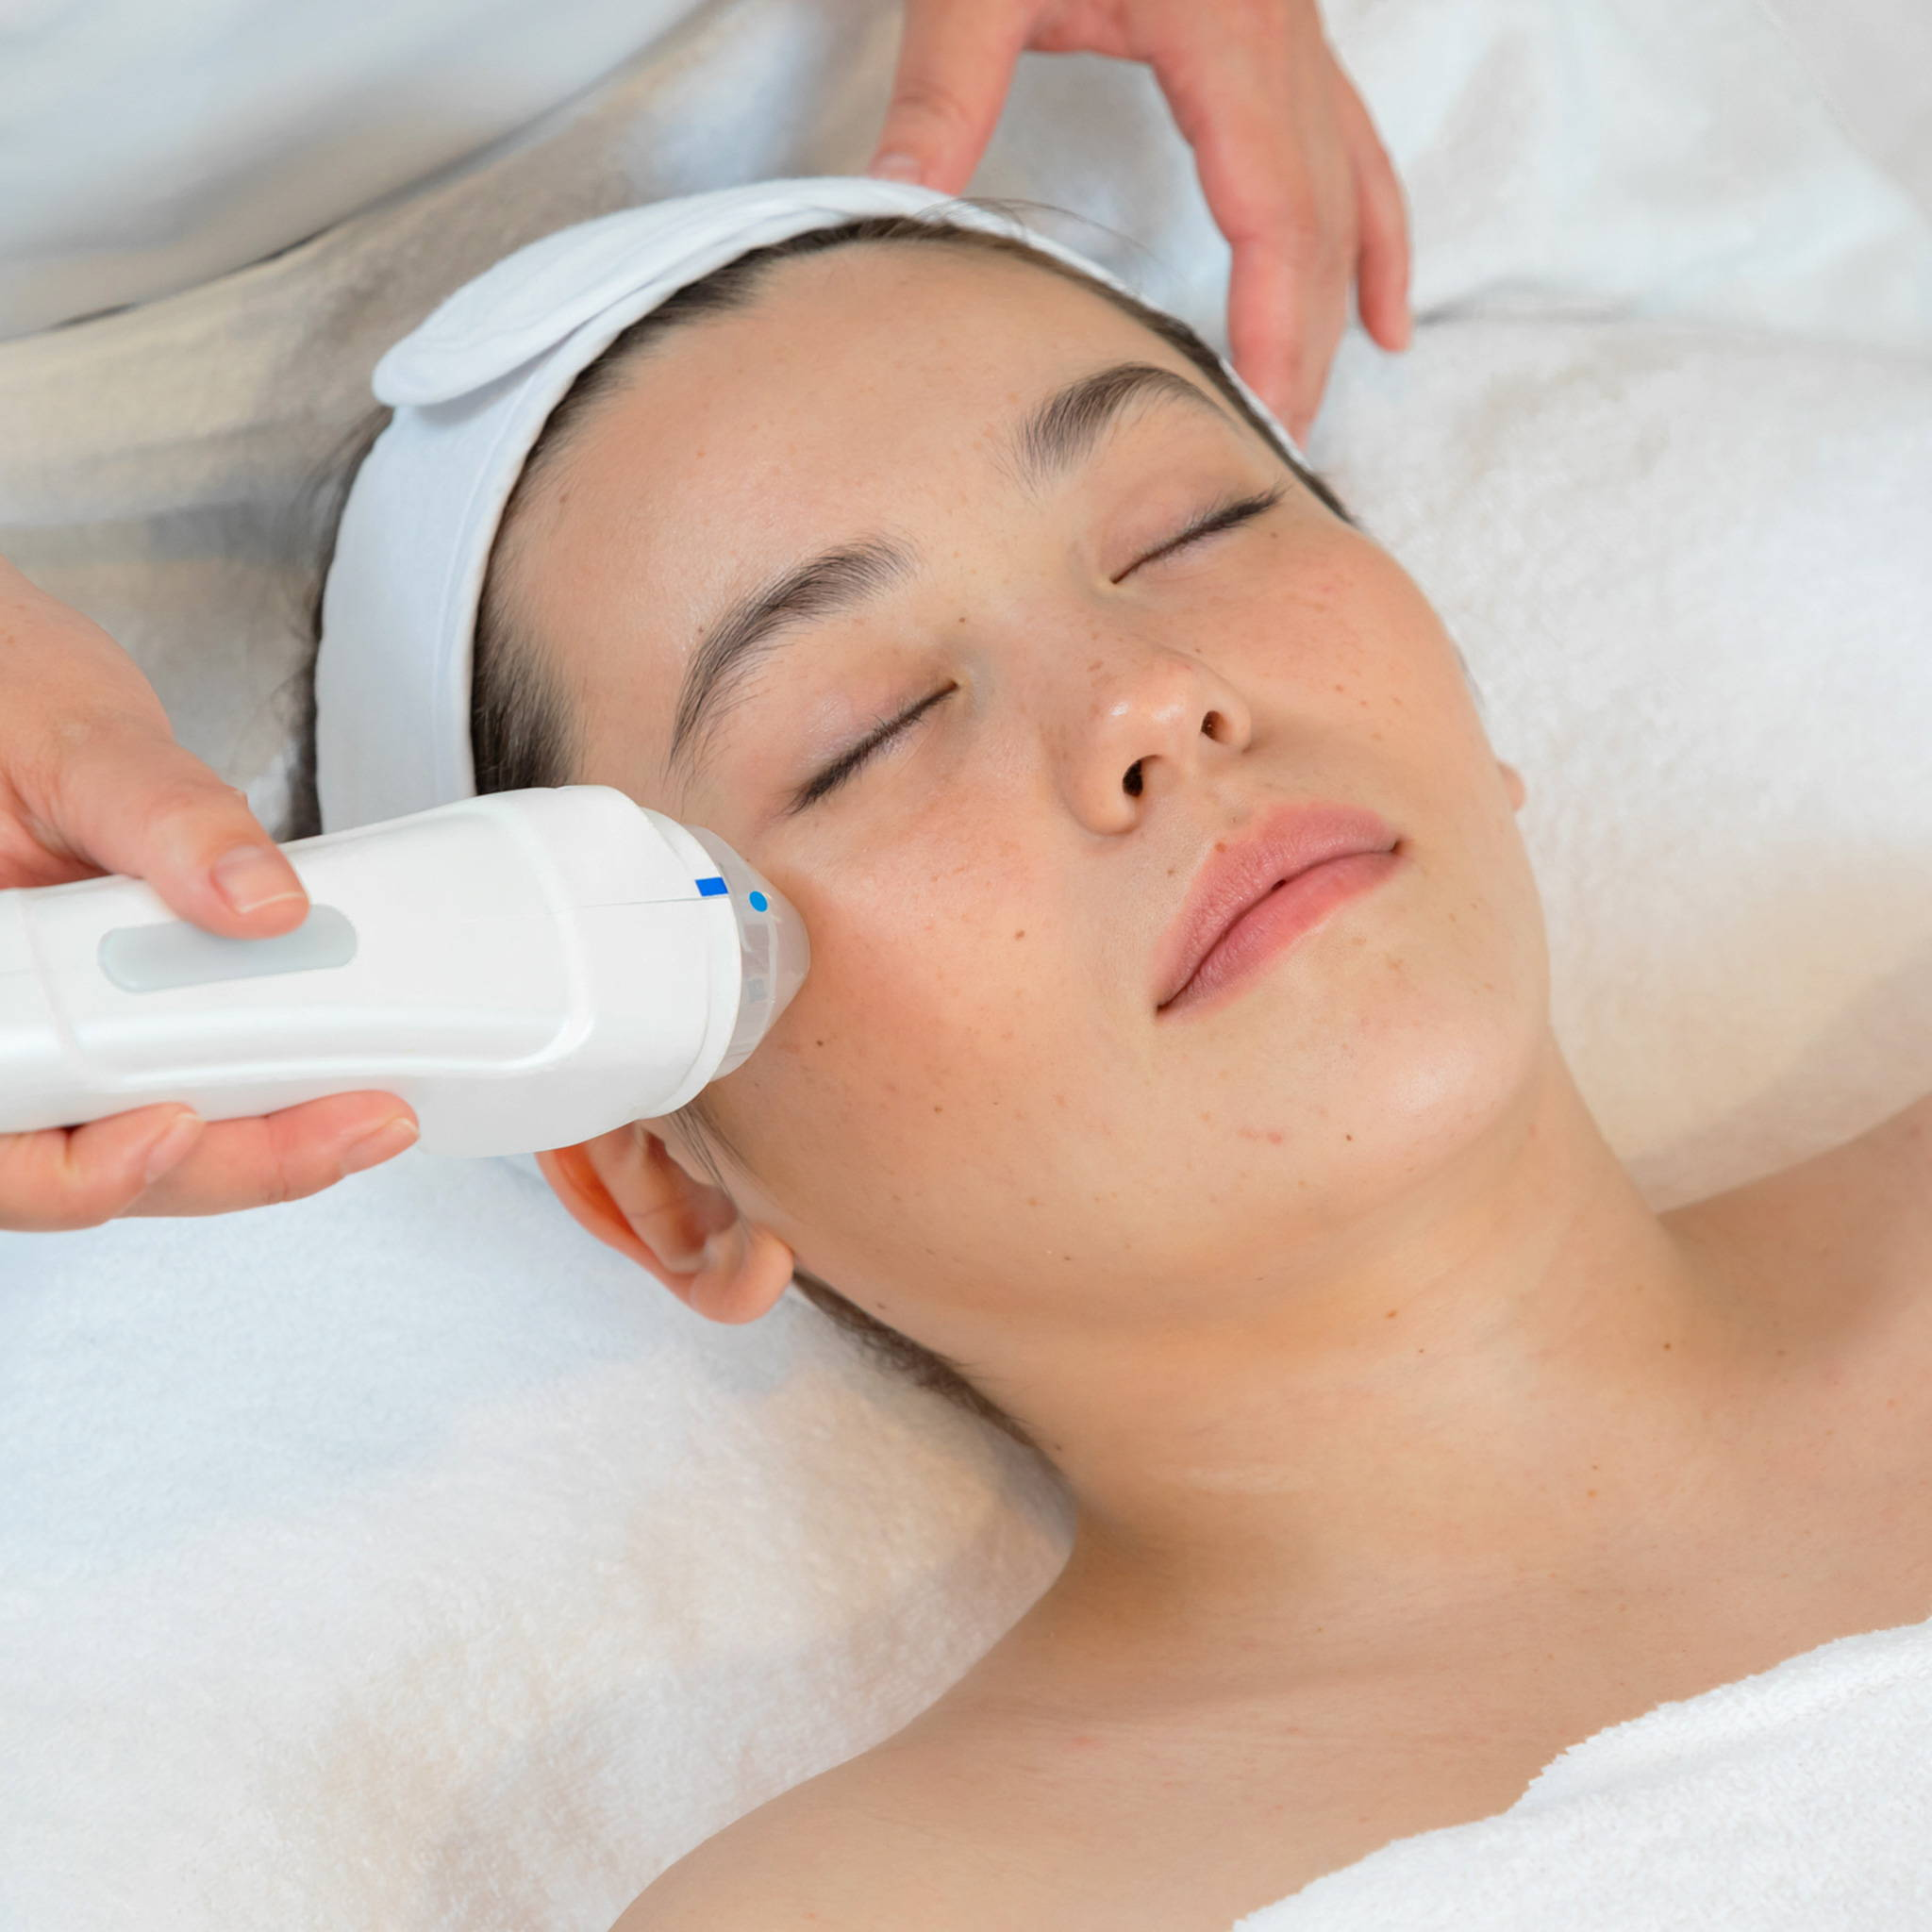 Intensif RF Microneedling Neck Treatment